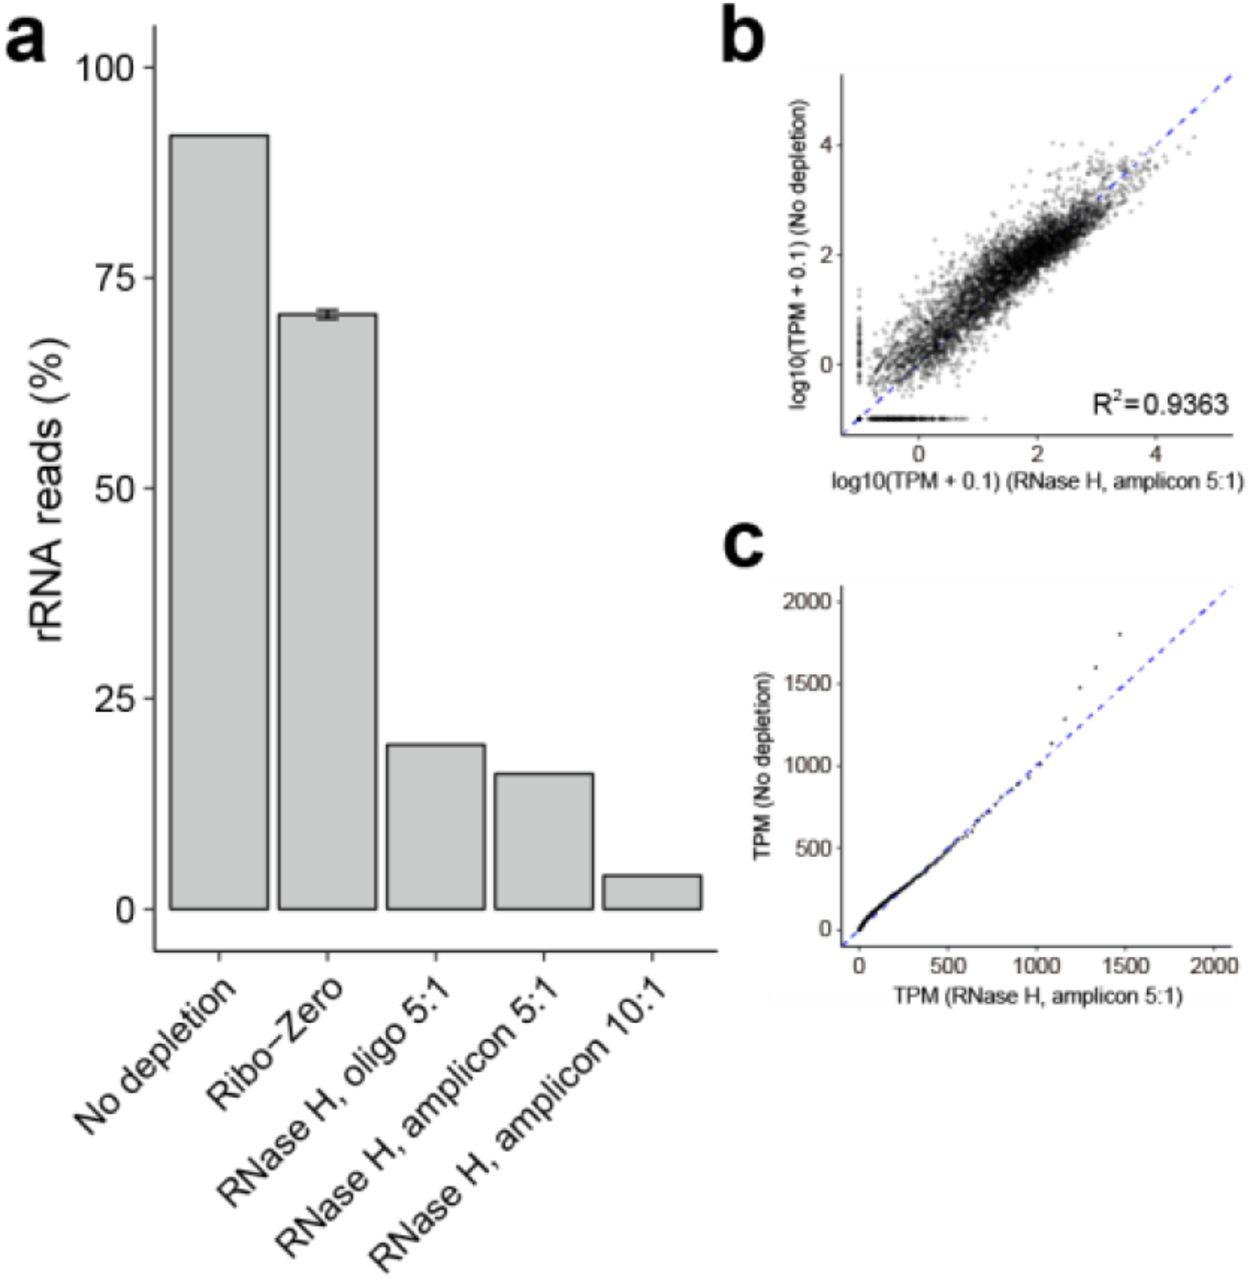 RNase H based rRNA depletion with amplicons. a) Proportion of rRNA-aligning reads of total mapped reads (% rRNA reads), for un-depleted, Ribo-Zero depleted, and RNase H depleted samples with chemically synthesized oligonucleotides (oligo) or amplicon-based ssDNA (amplicon) probes. b, c) Scatter plot (b) and Quantile-Quantile (Q-Q) plot (c) for depleted sample using amplicon probes with 5:1 probe-to-RNA ratio and un-depleted sample.